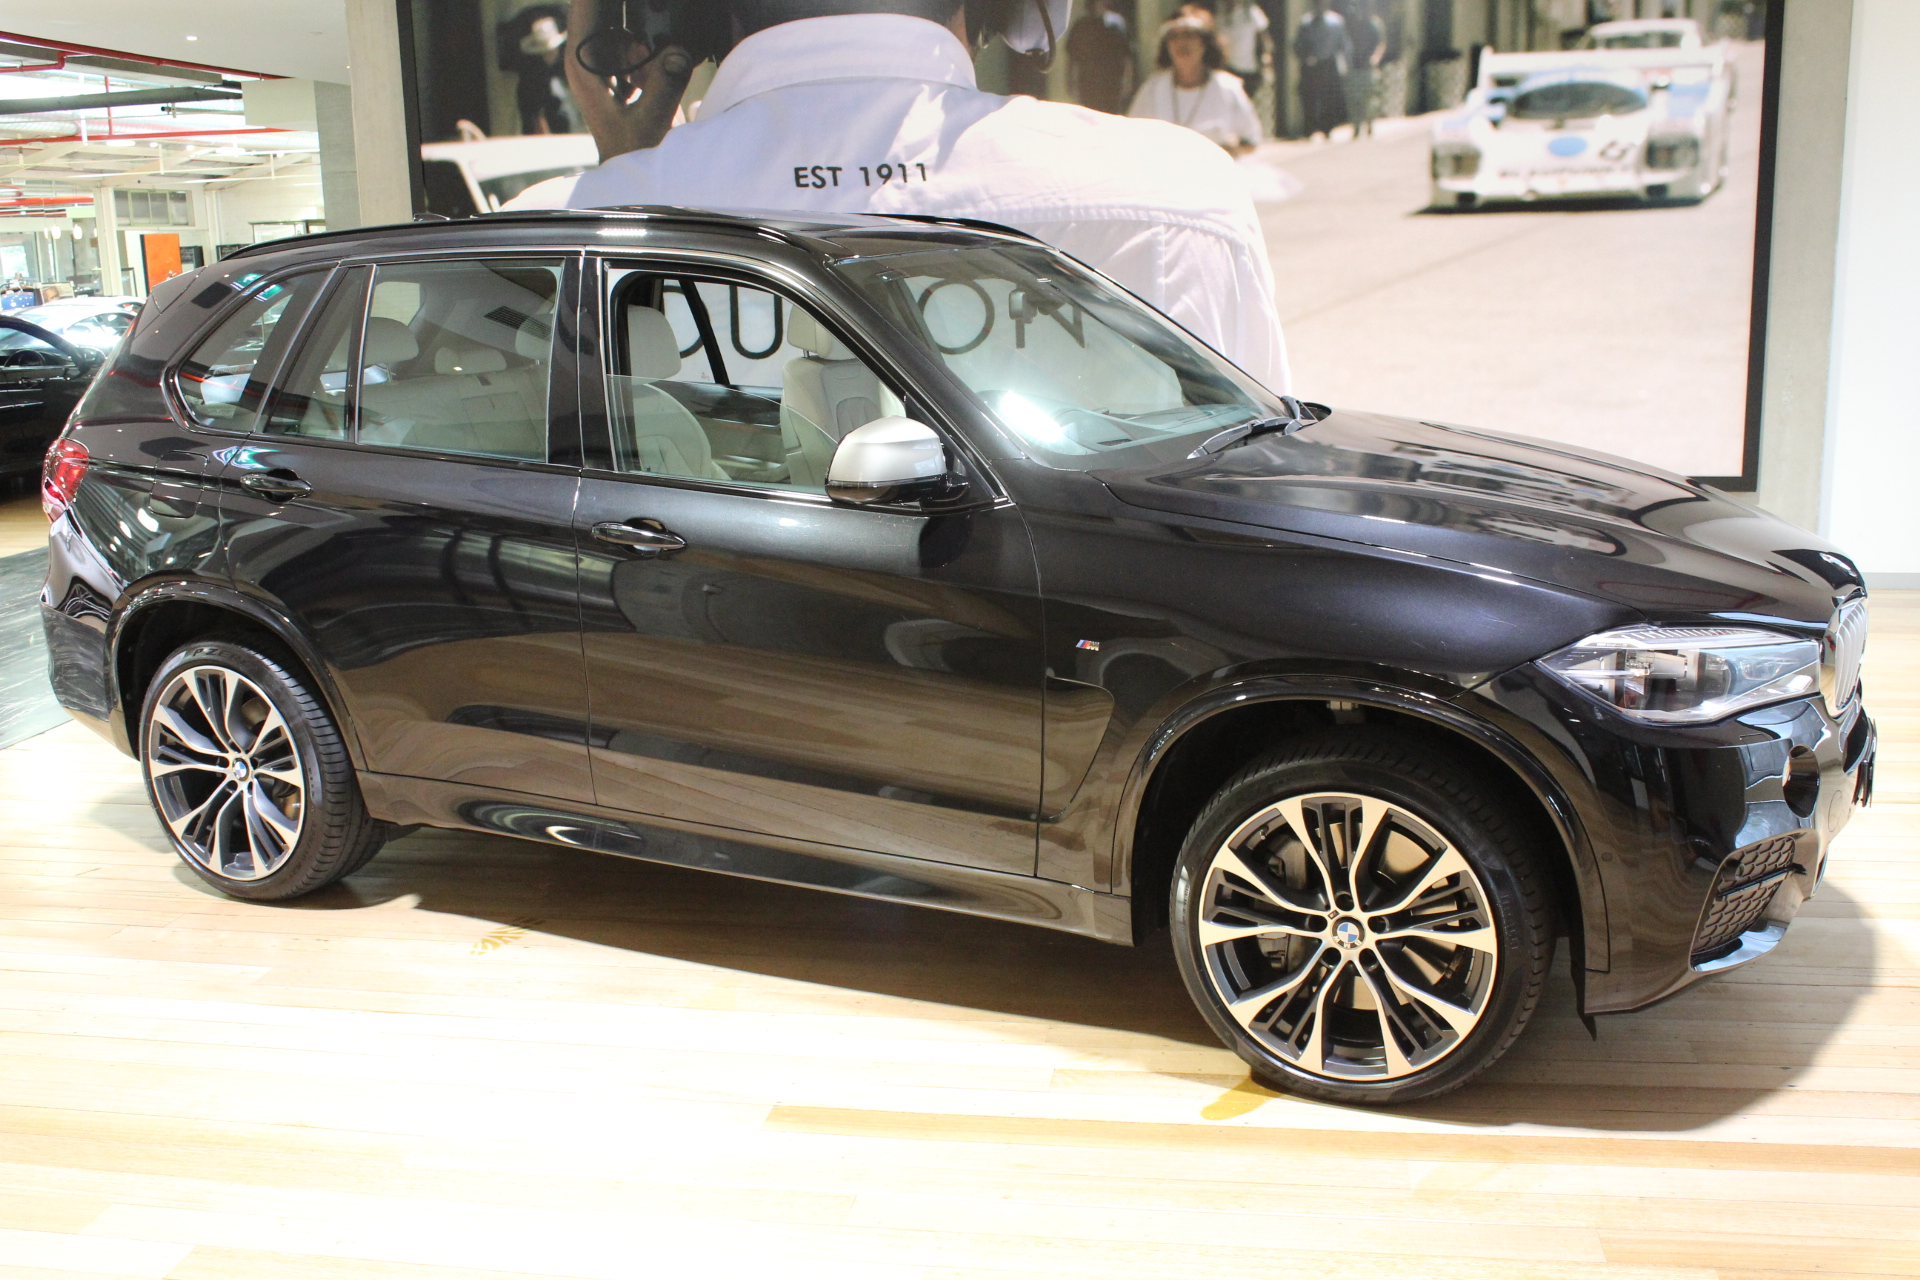 2014 BMW X5 F15 M50D- sold in Australia